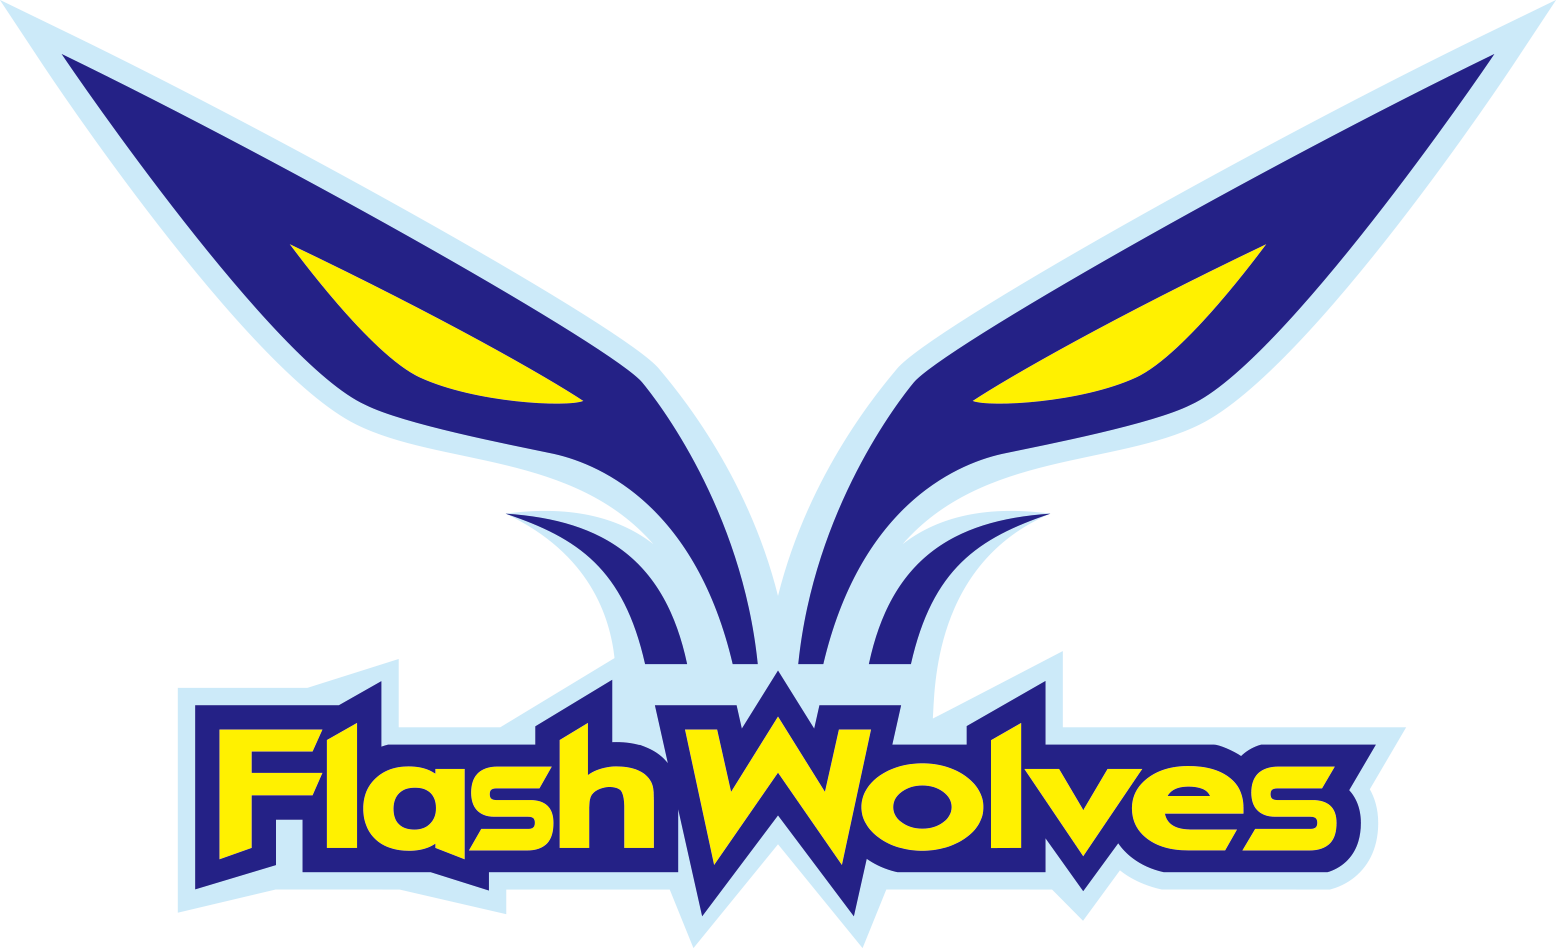 FlashWolves